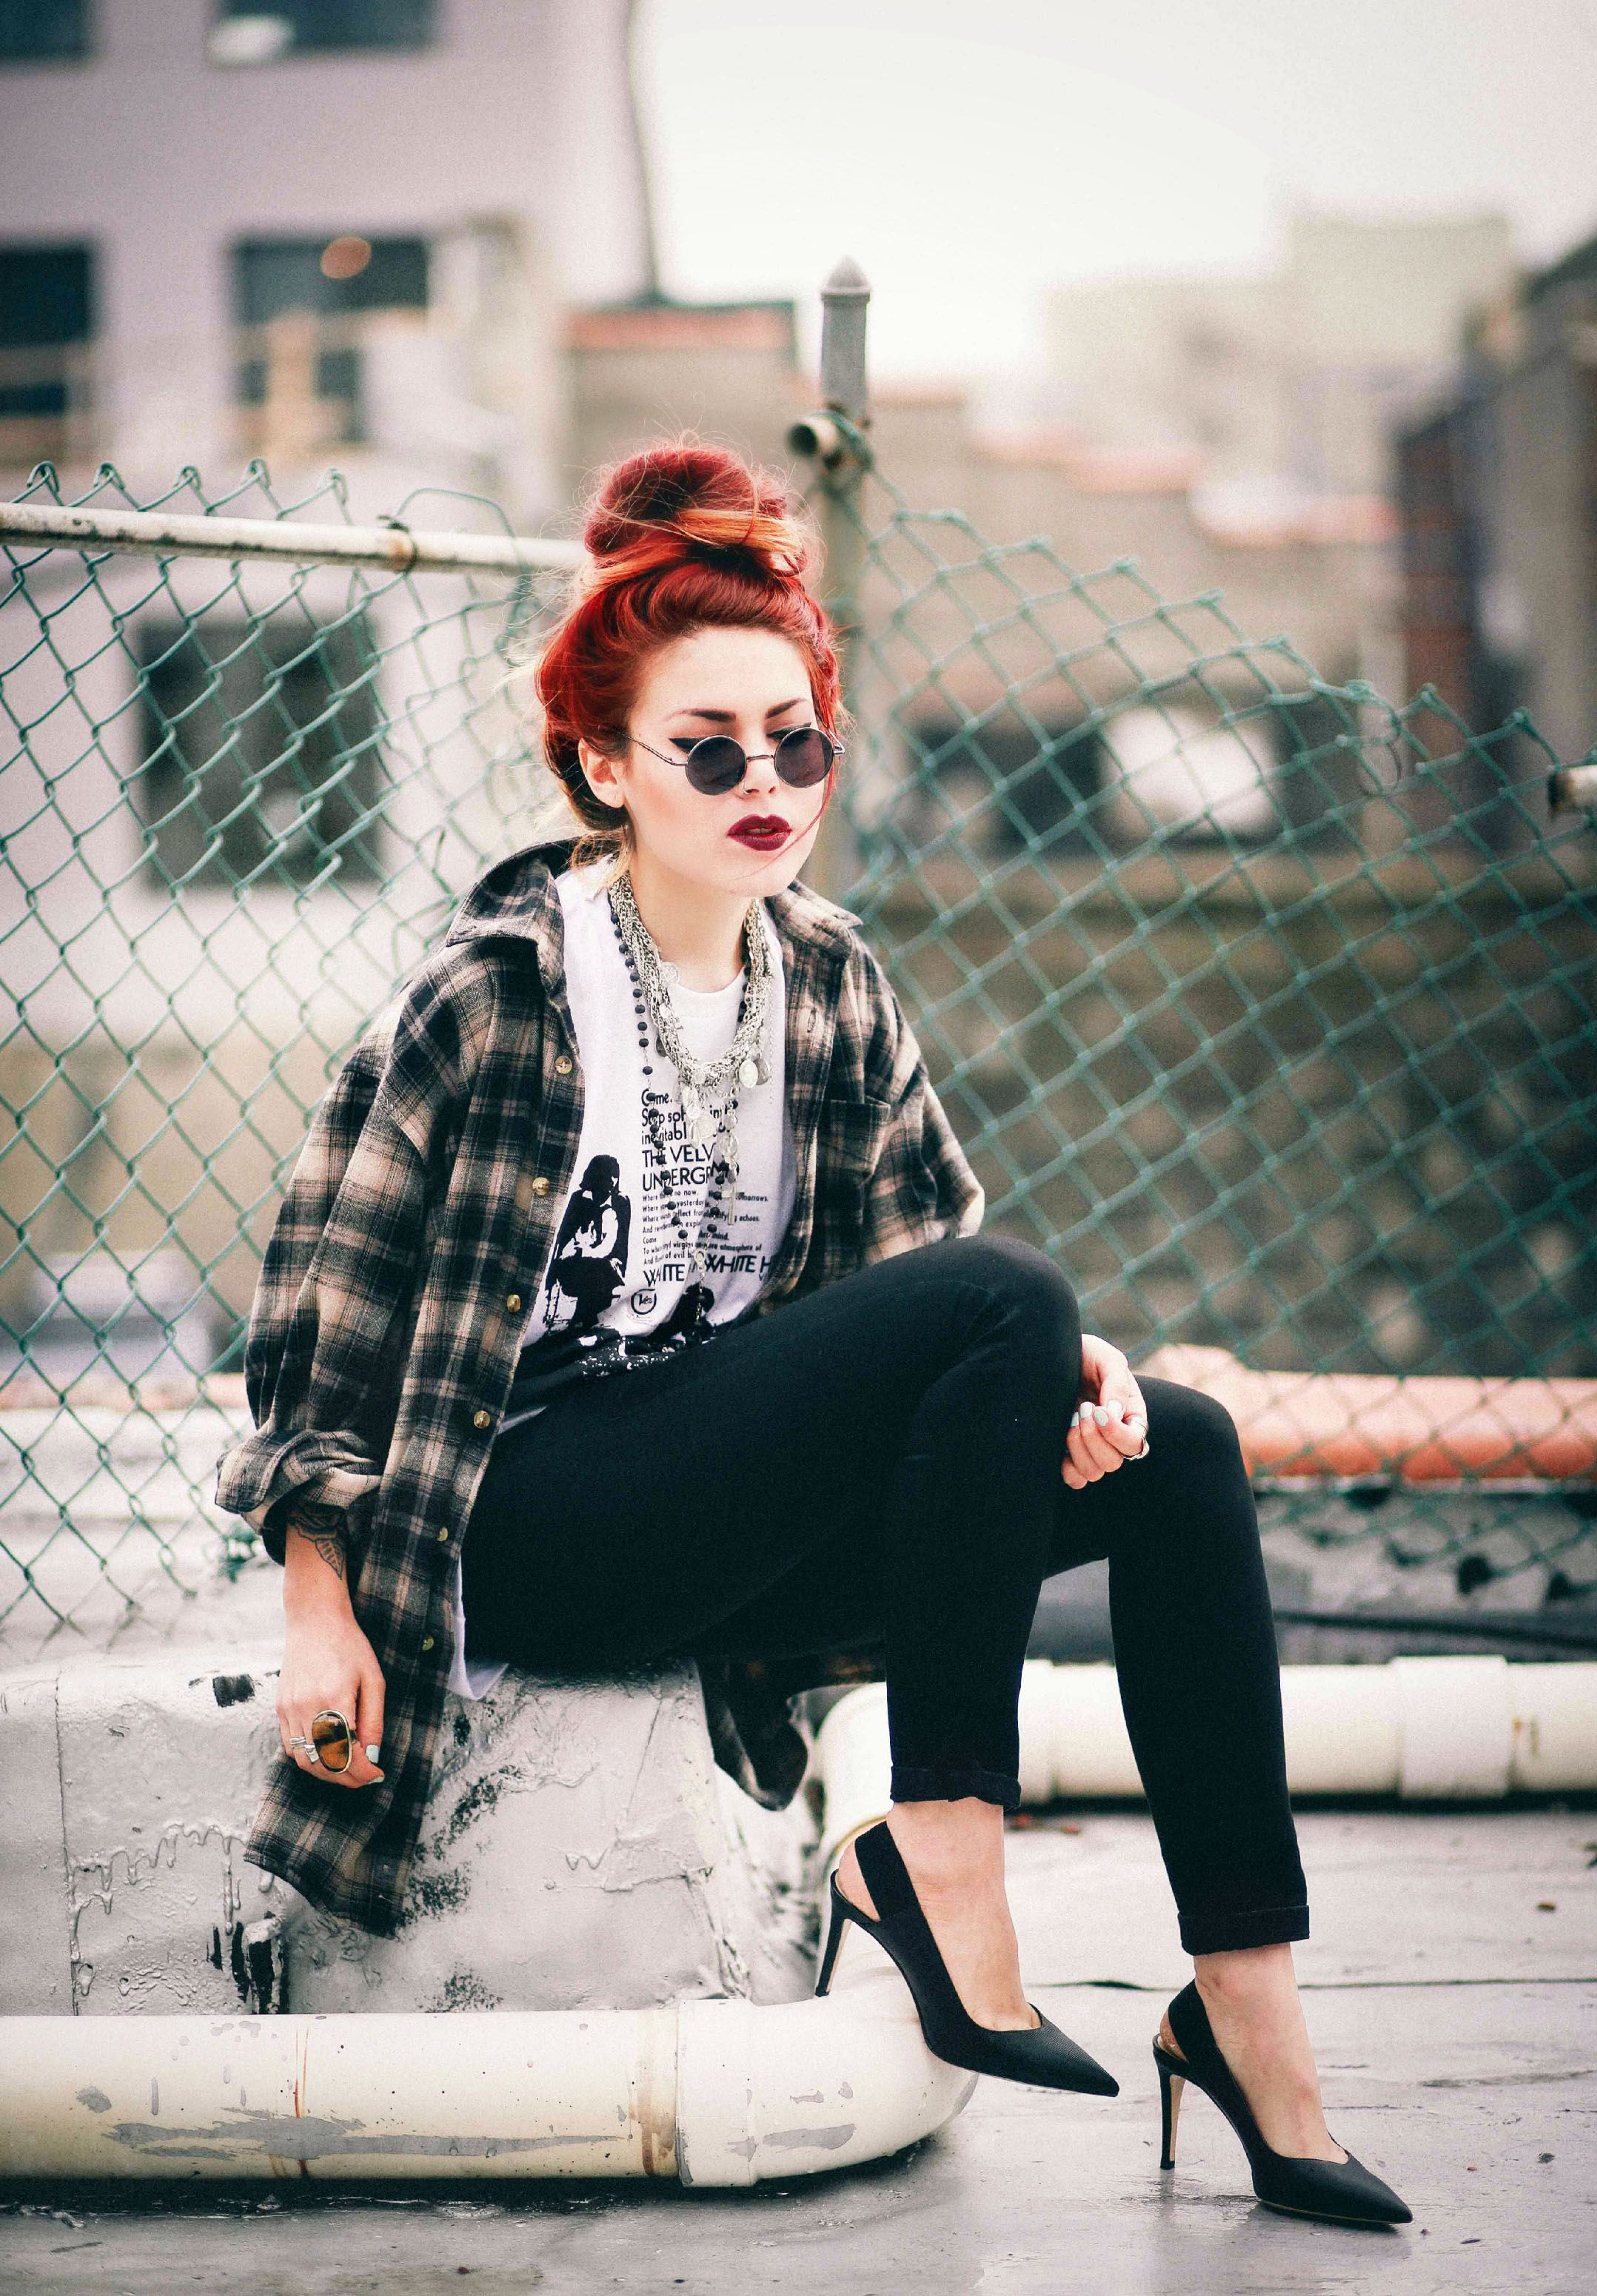 Grunge flannel outfits  Pin by naomienchanted on Luanna Perez  Pinterest  Urban outfitters